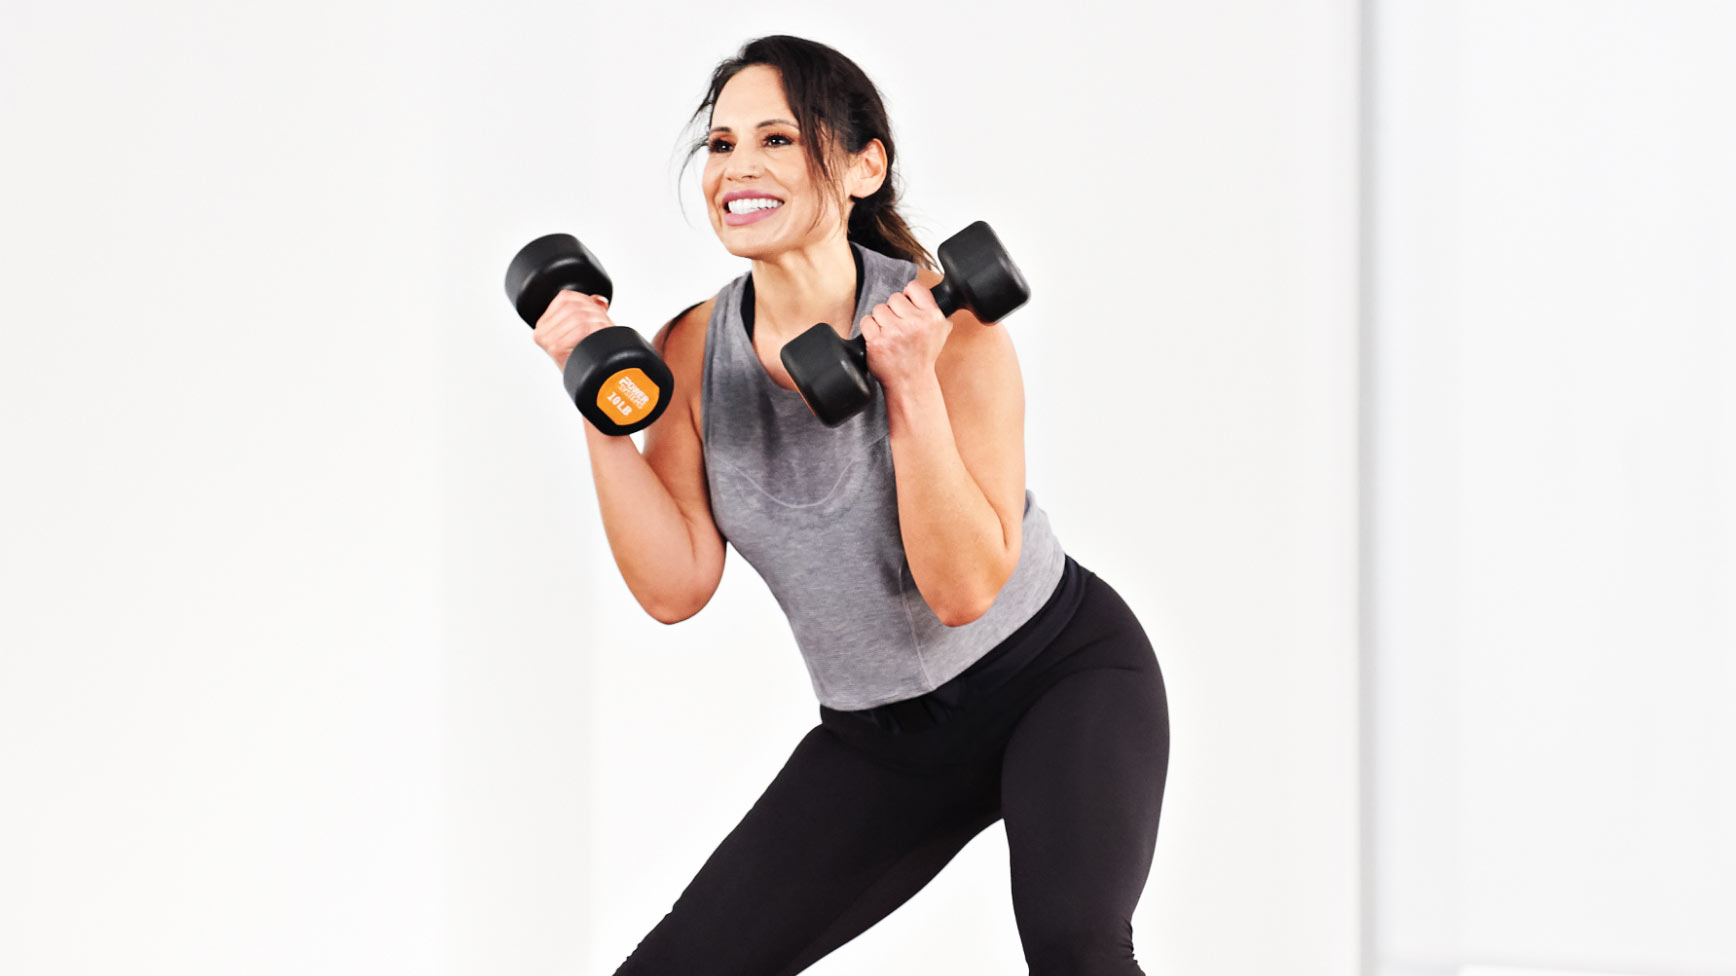 A smiling women in workout gear uses dumbbells during a fitness class